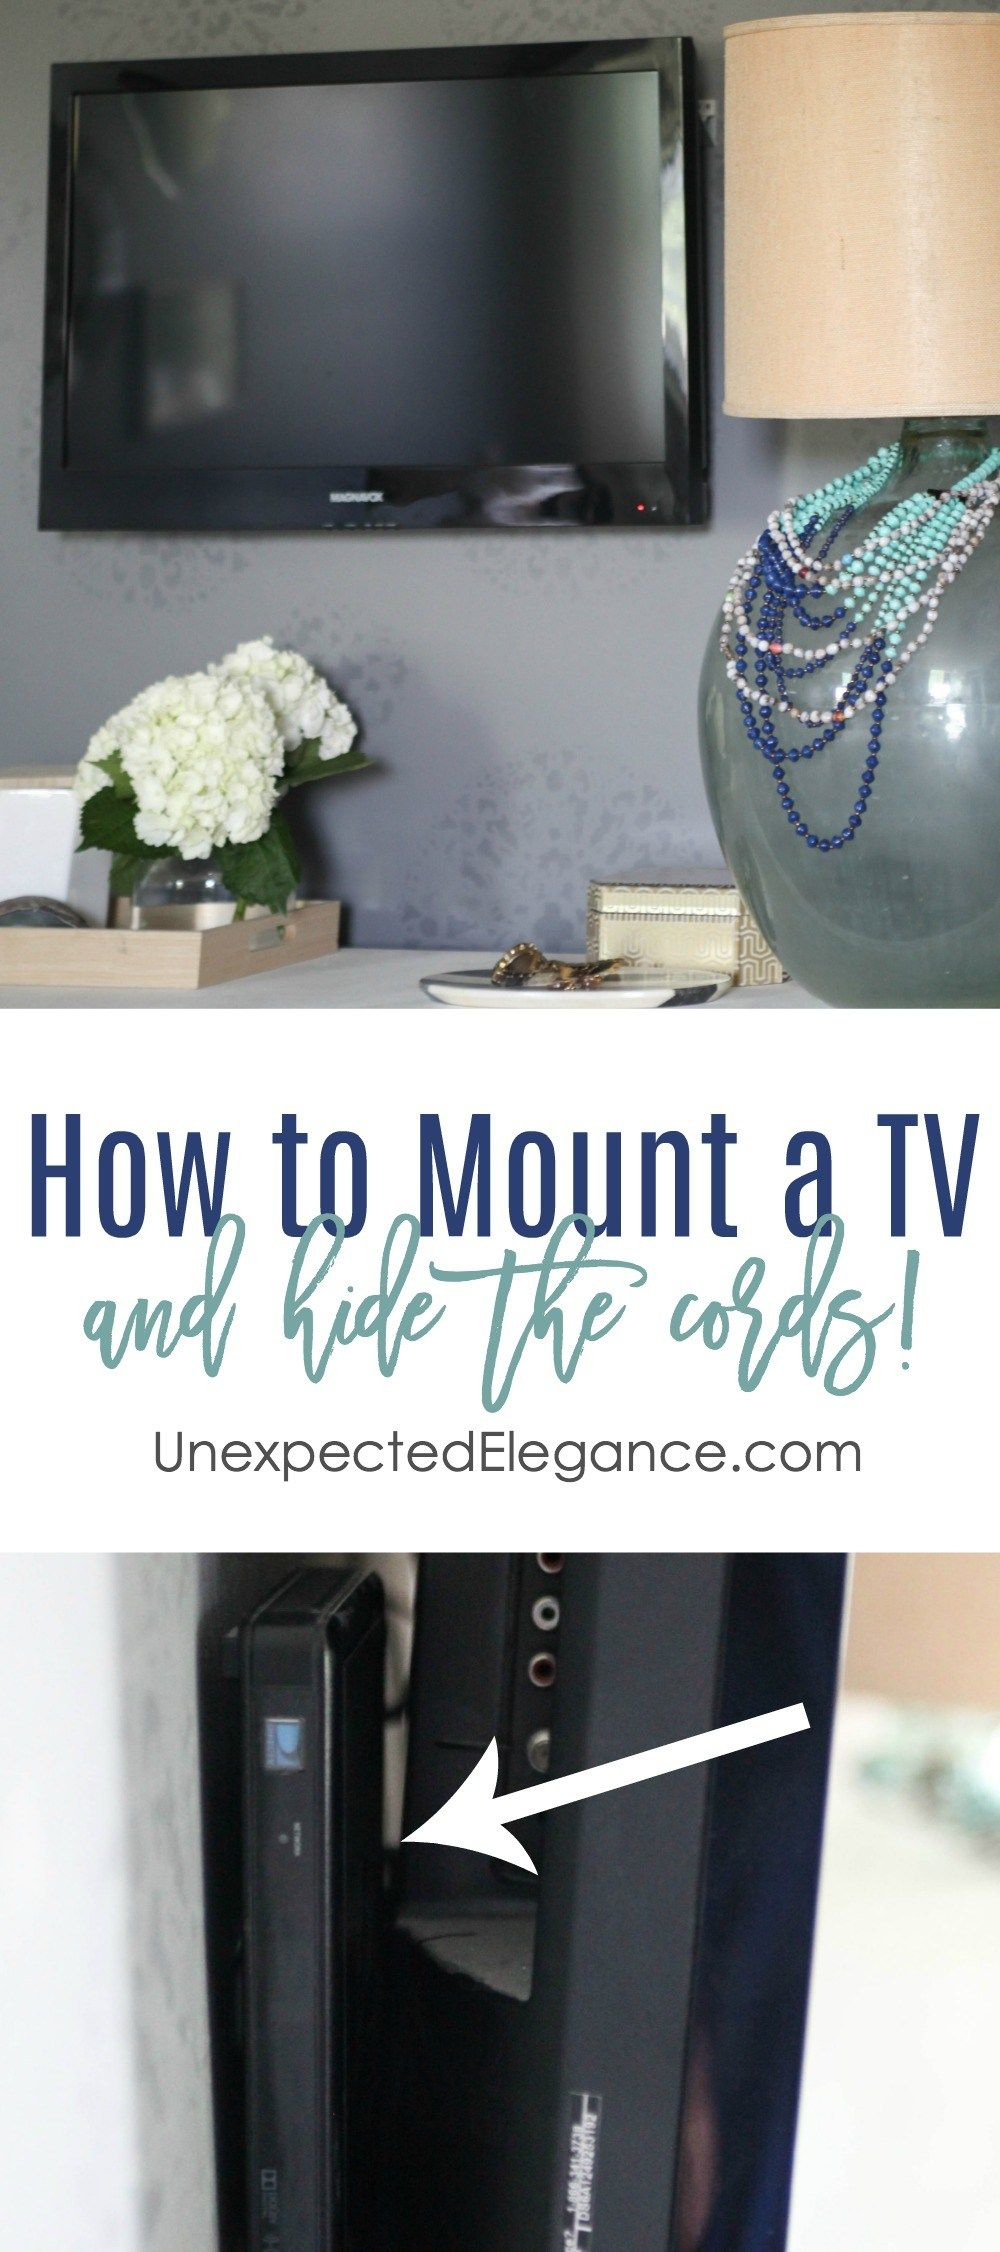 How To Mount A T V And Hide The Cords Awesome Tips For Life